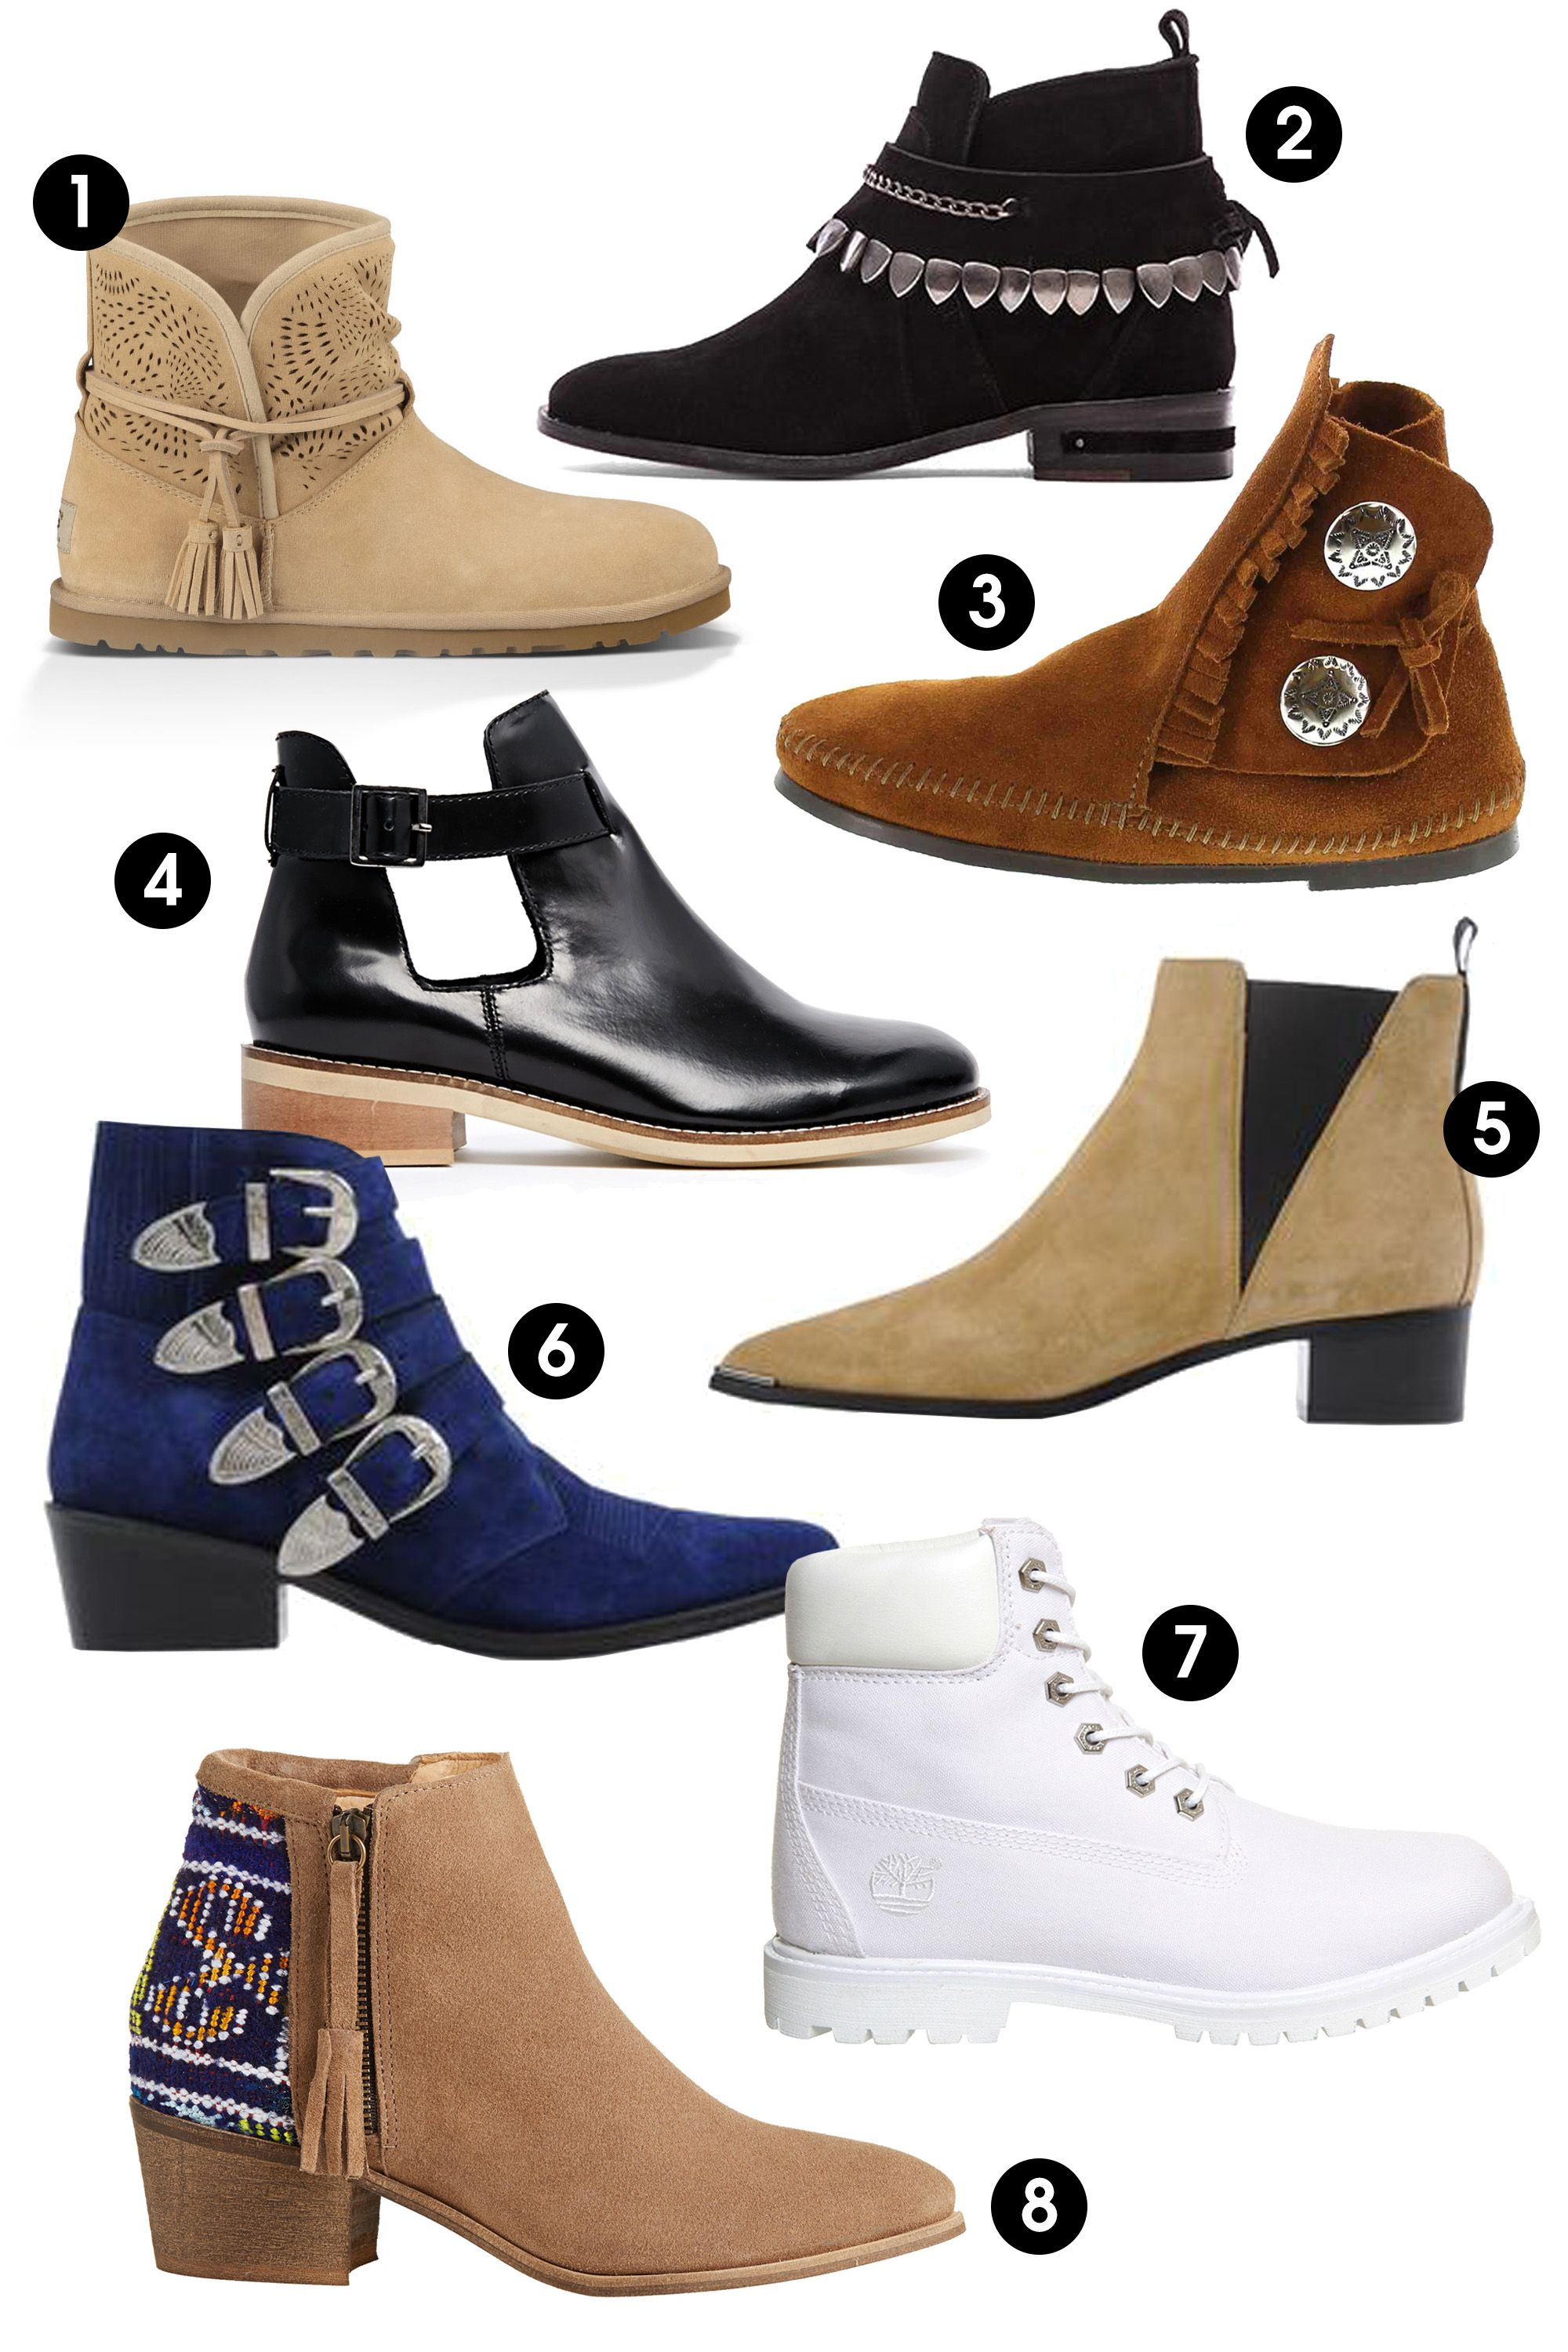 e3cfb002784 Spring Shoes 2015 - 96 Sandals, Sneakers, Flats, and Wedges for Spring